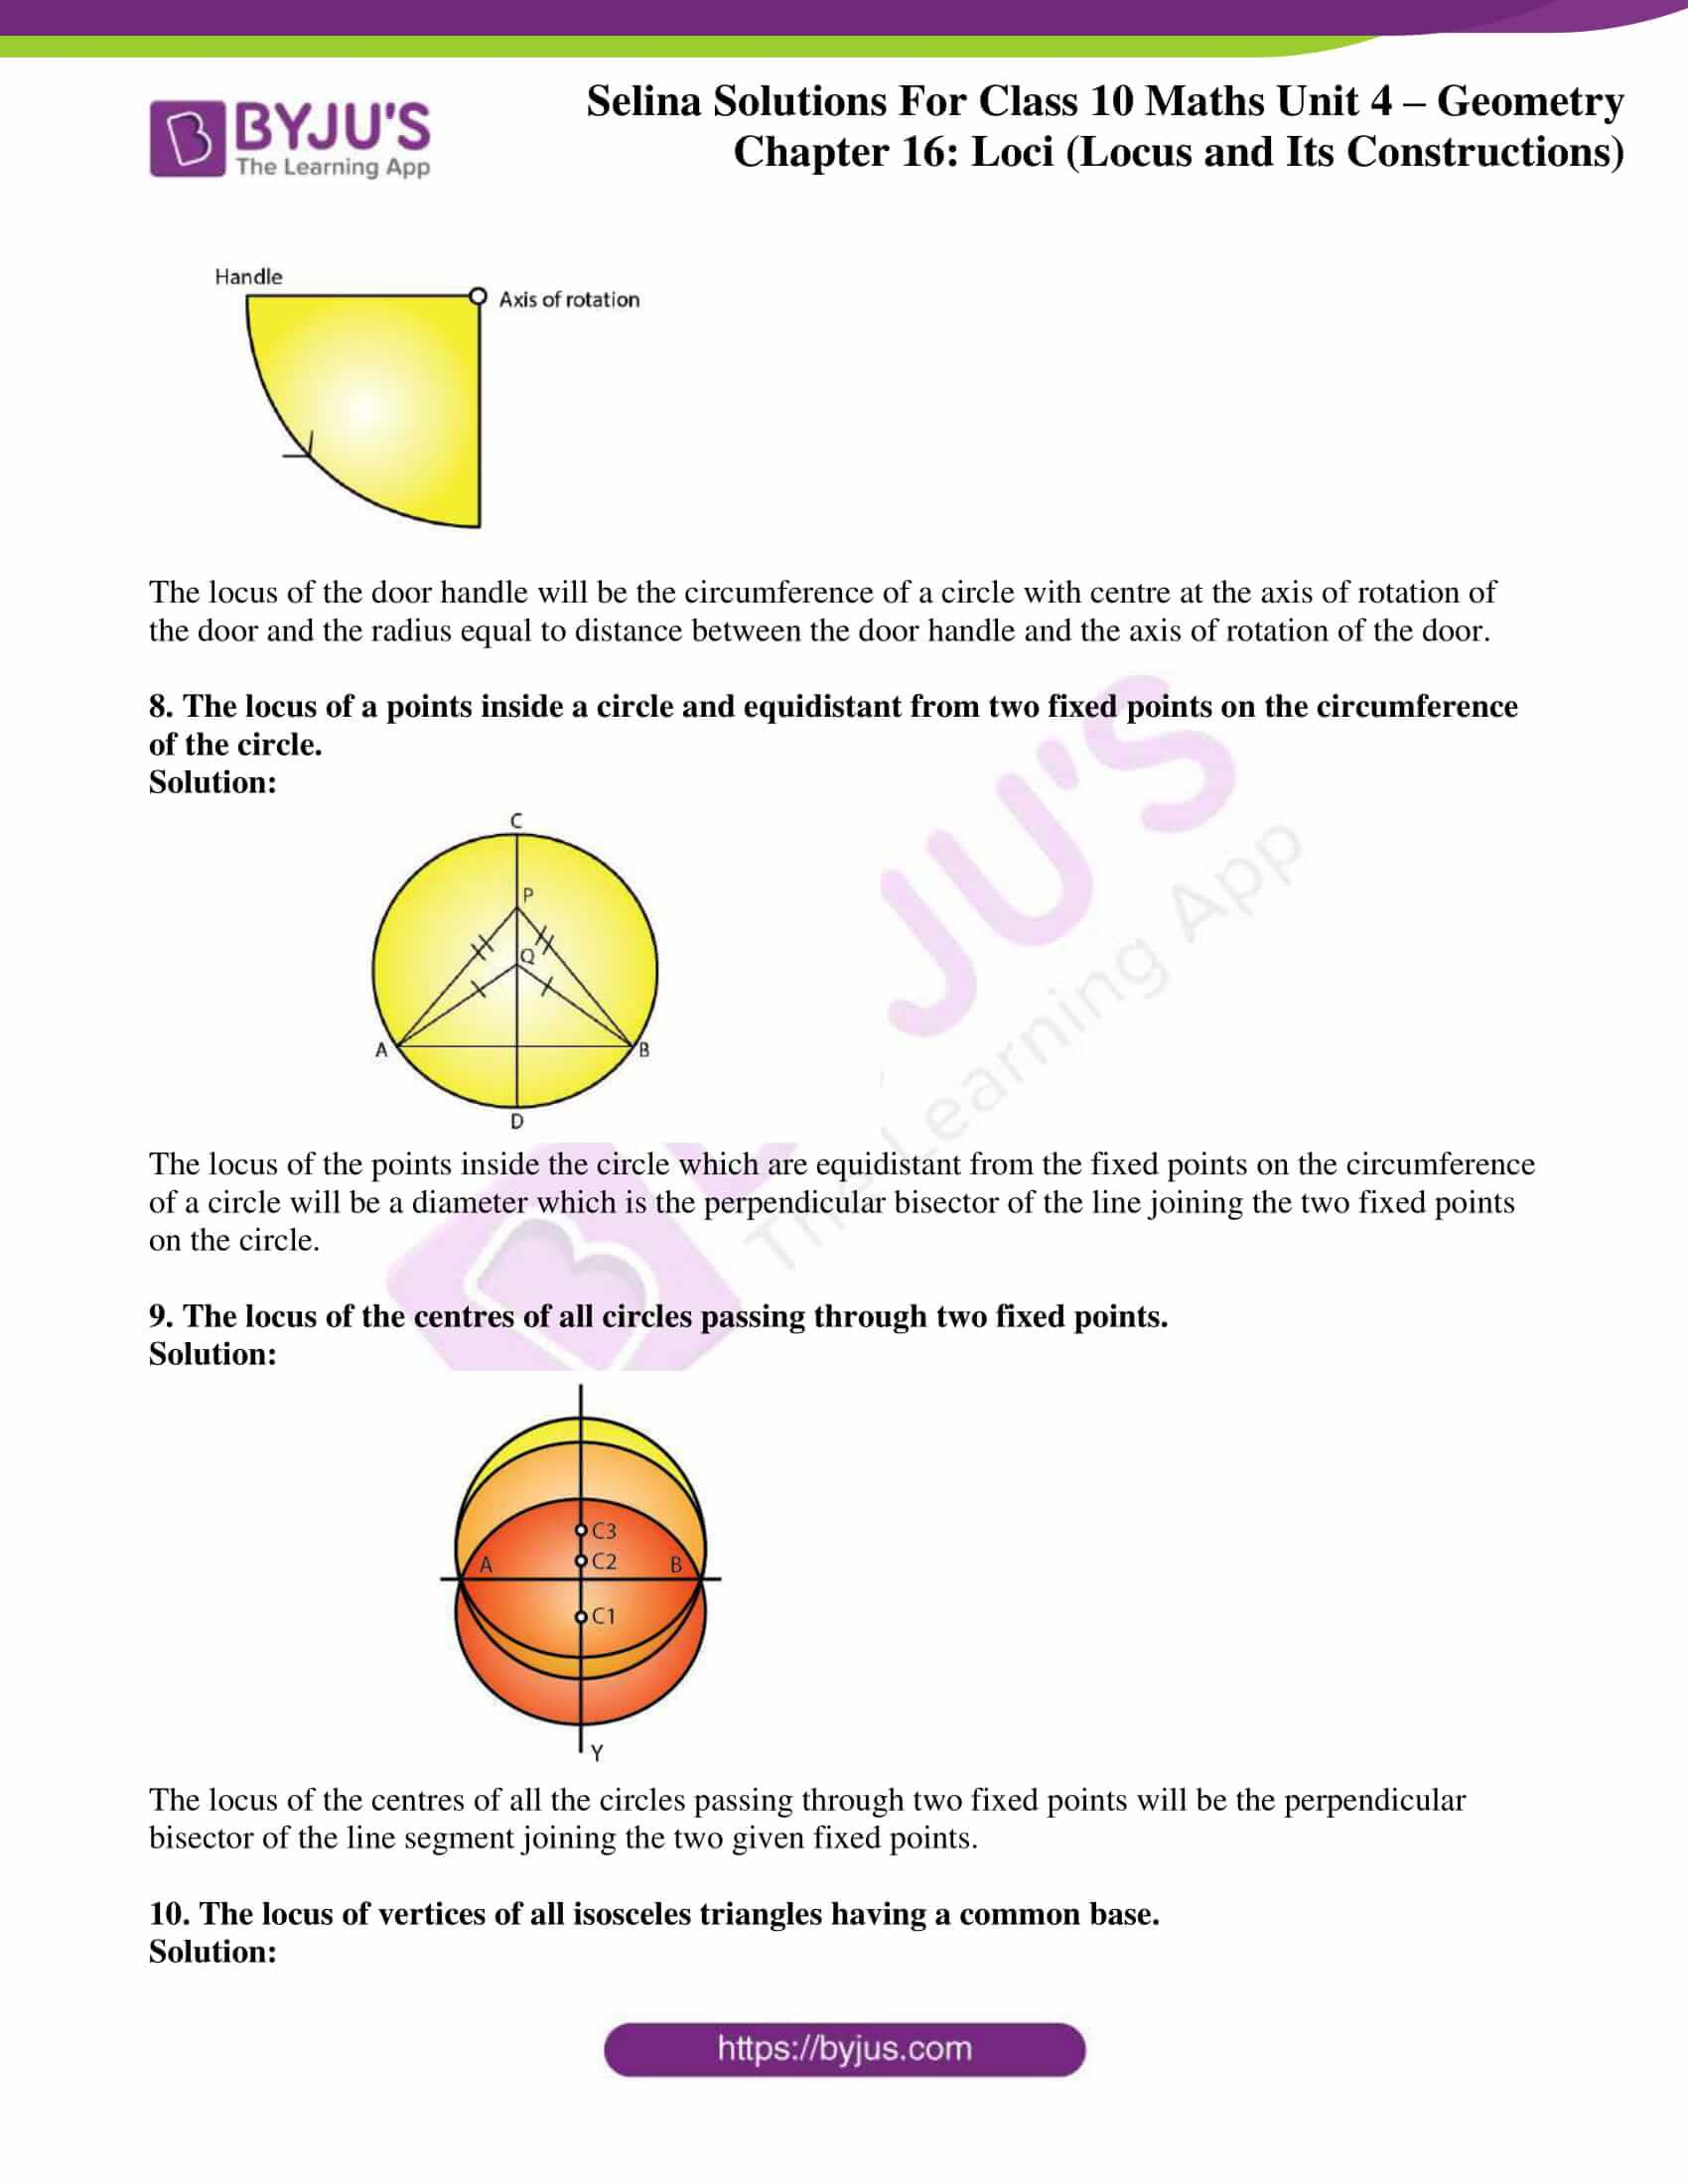 selina solution concise maths class 10 chapter 16 ex b 3